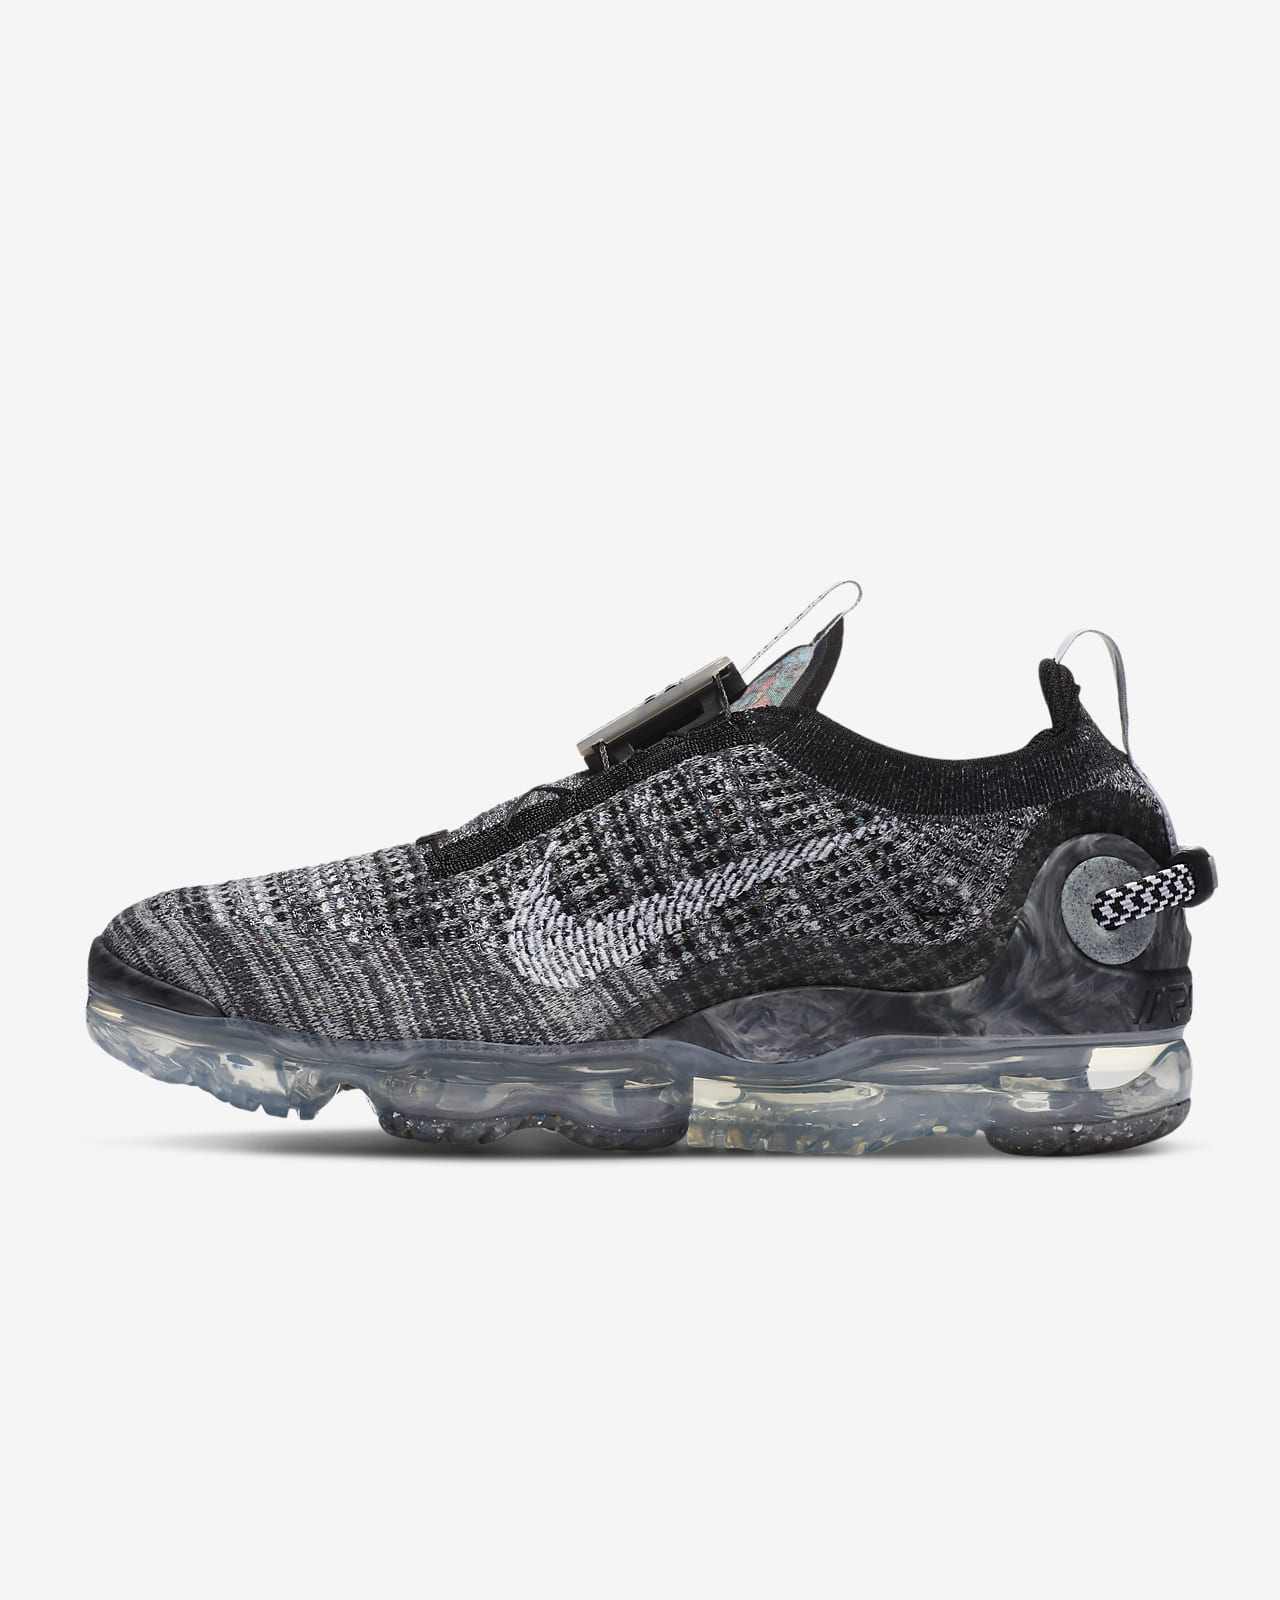 Chaussure Nike Air VaporMax 2020 Flyknit pour Homme